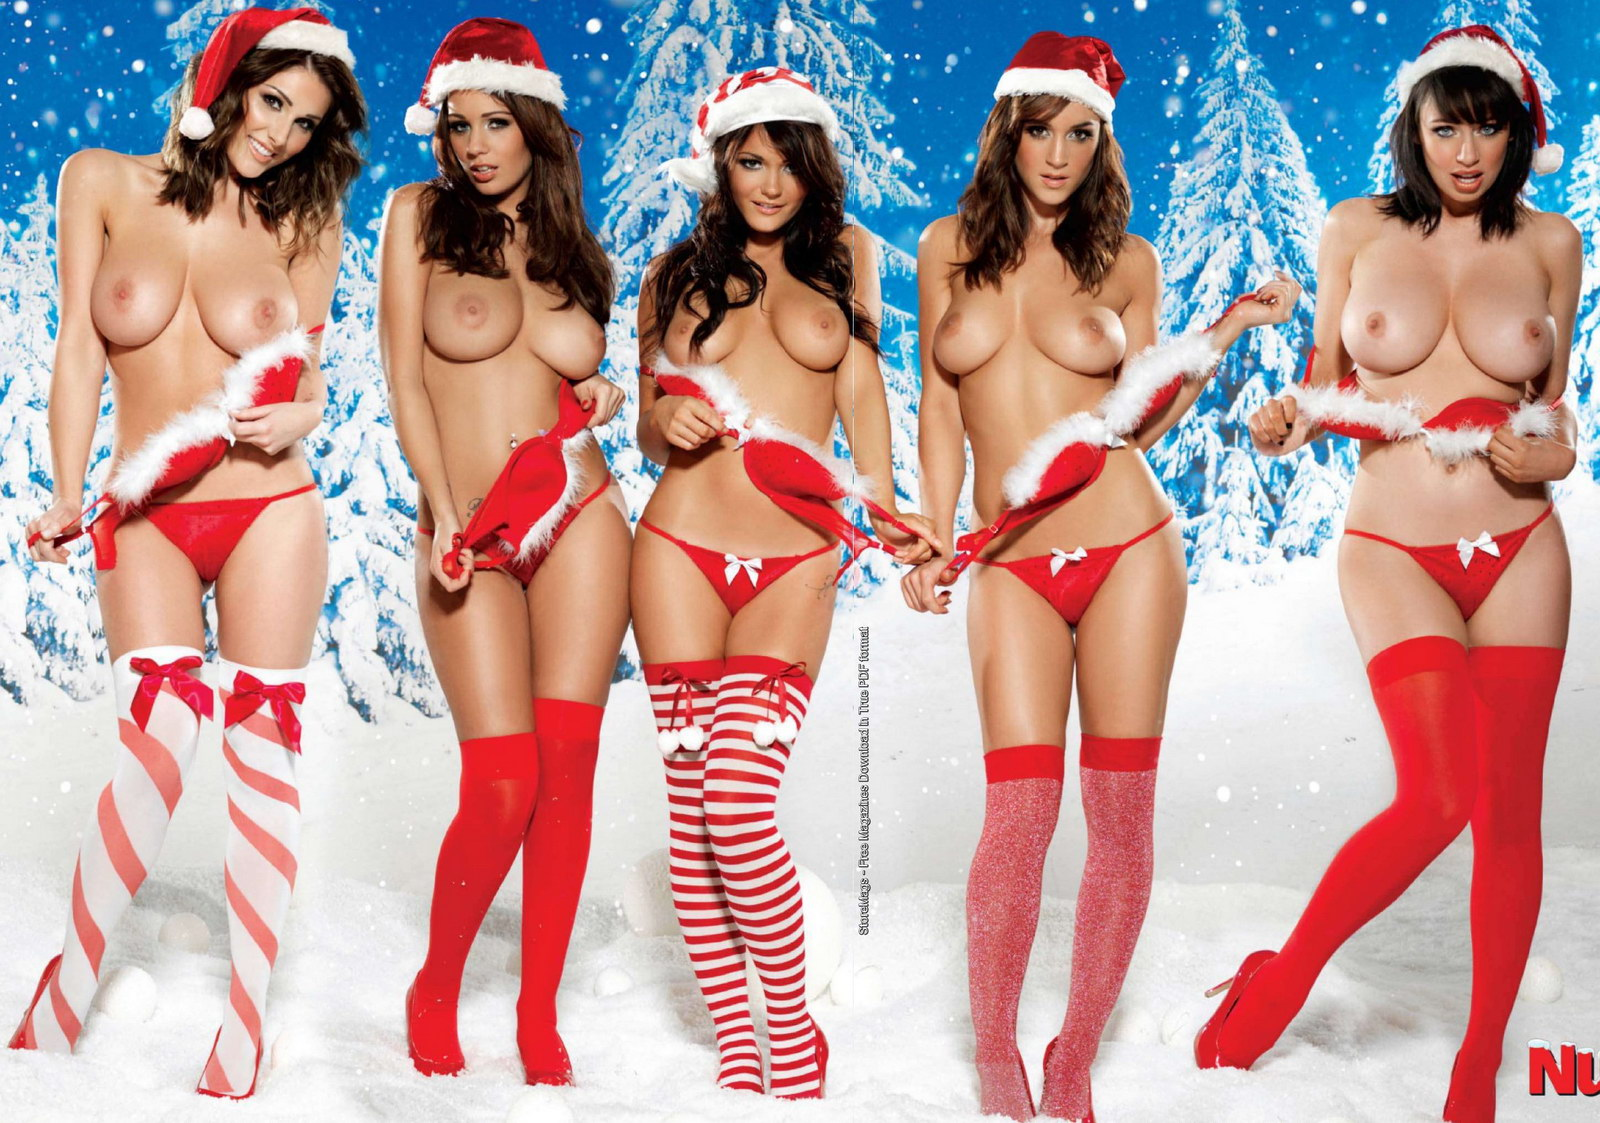 rosie_jones_holly_peers_india_reynolds_sophie_howard_lucy_pinder_big_boobs_naked_tits_merry_sexy_christmas_2.jpg